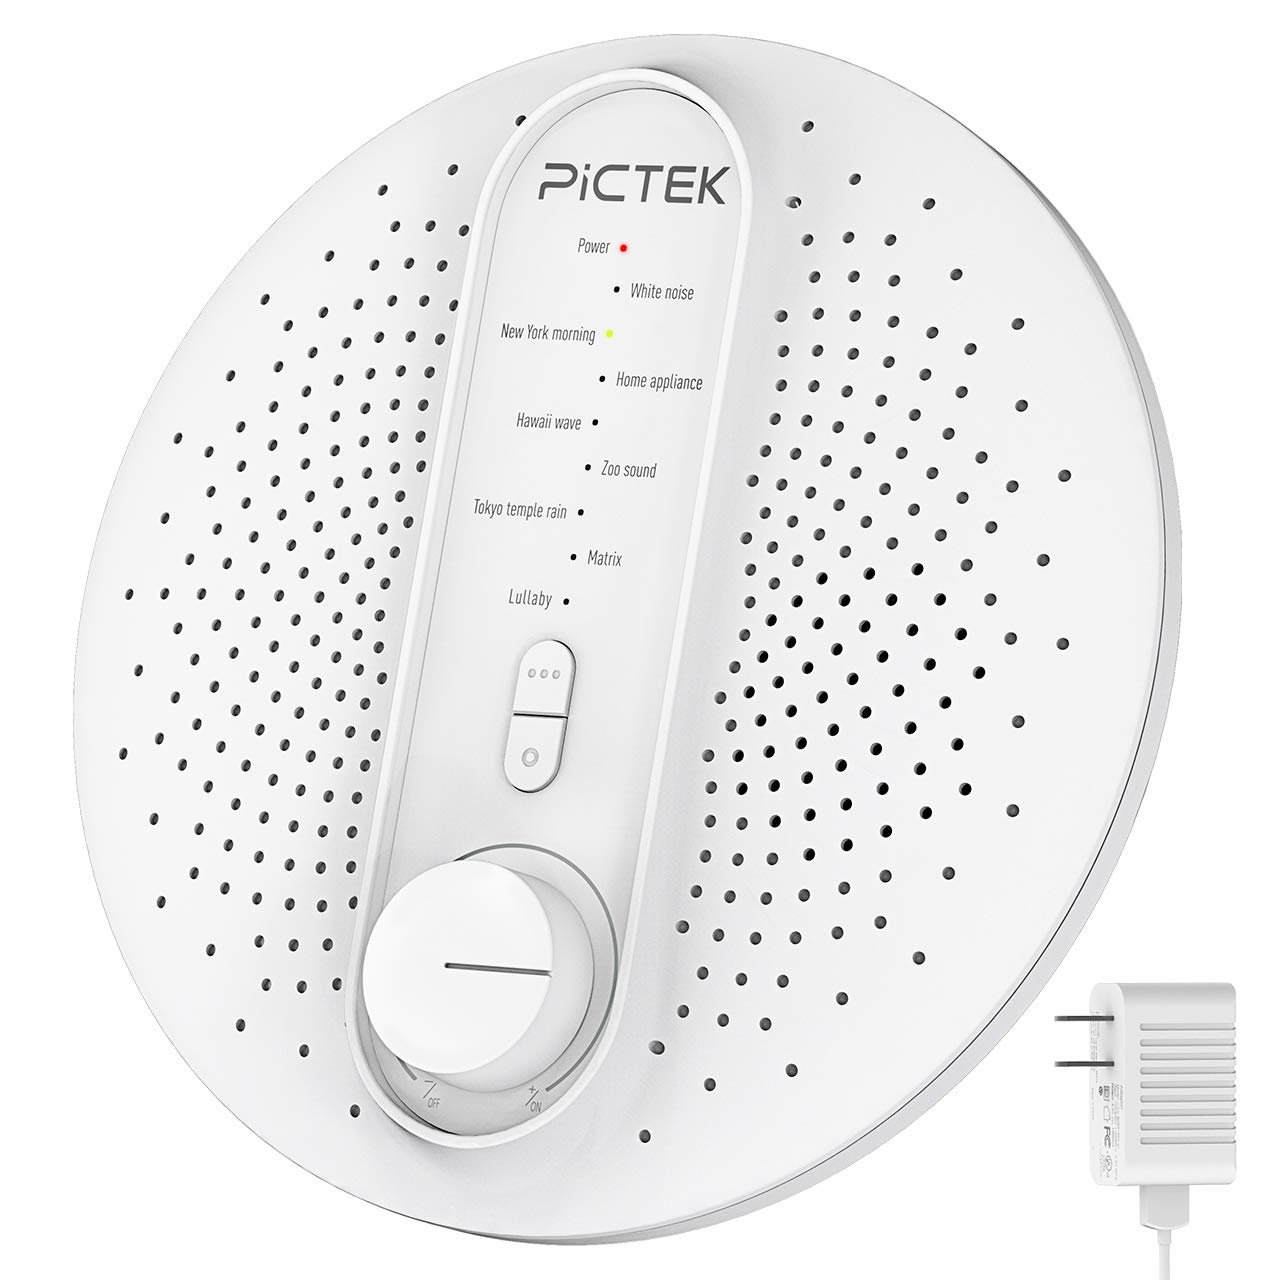 Sound Machine, Pictek White Noise Machine for Baby Adult Sleep All Night Playing, Portable Noise Cancelling Machine [Updated Version] with 24 Non-Looping Nature Sounds Suitable for Home, Office and Travel [With Adapter] YTPTHP007BWUS-CAAA5